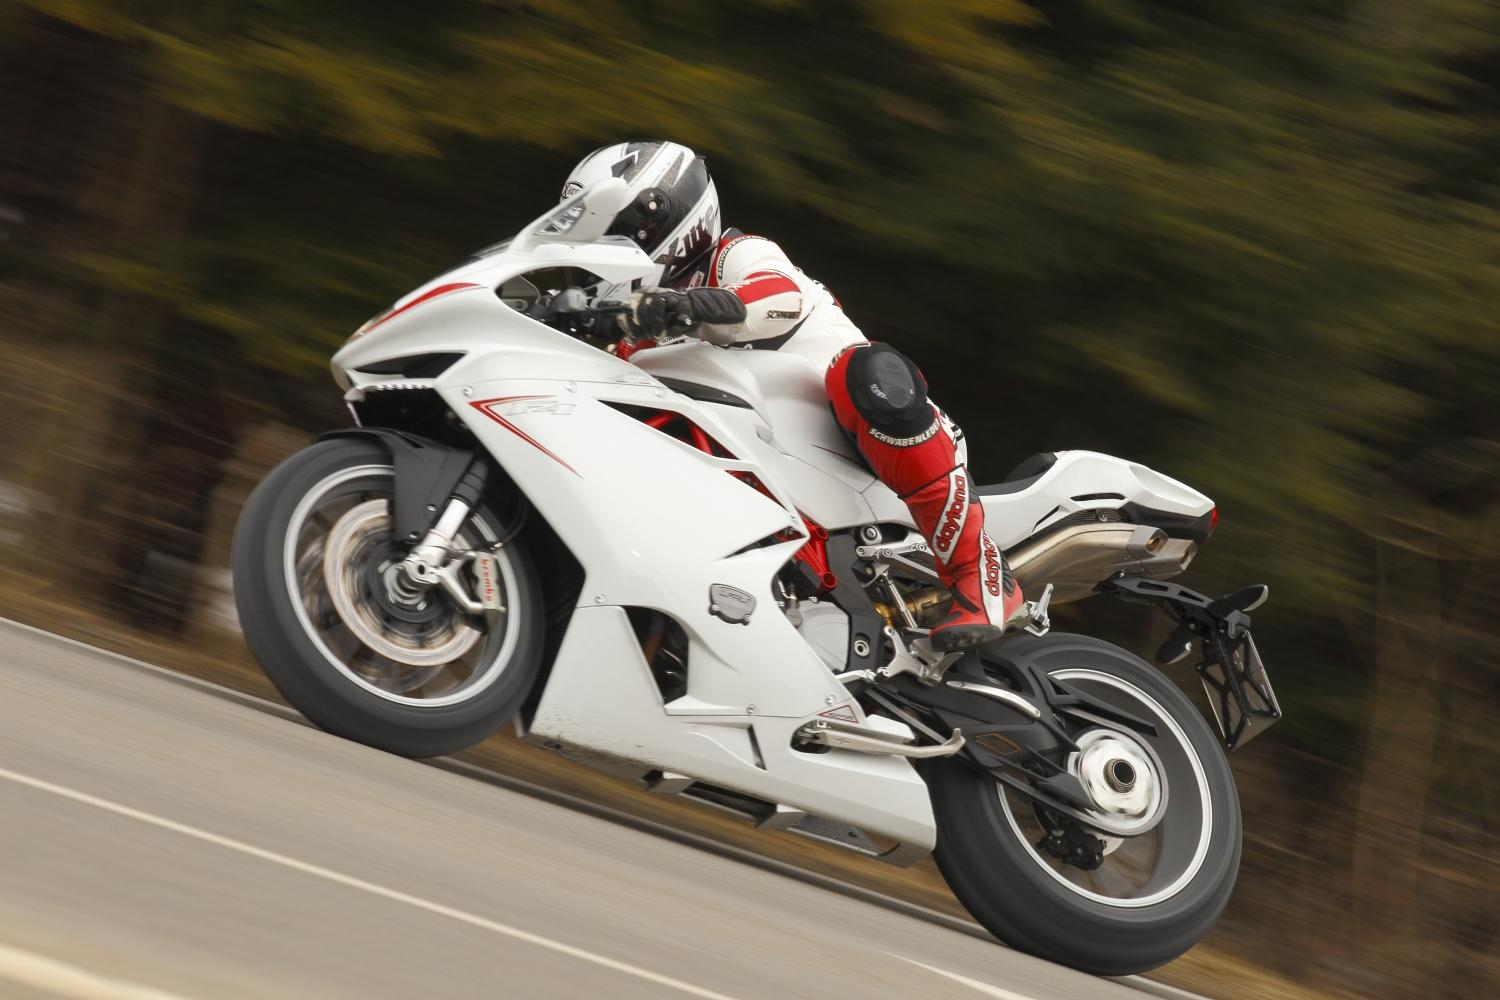 http://www.motorrad-bilder.at/slideshows/291/009267/mv-agusta-f4-002.jpg